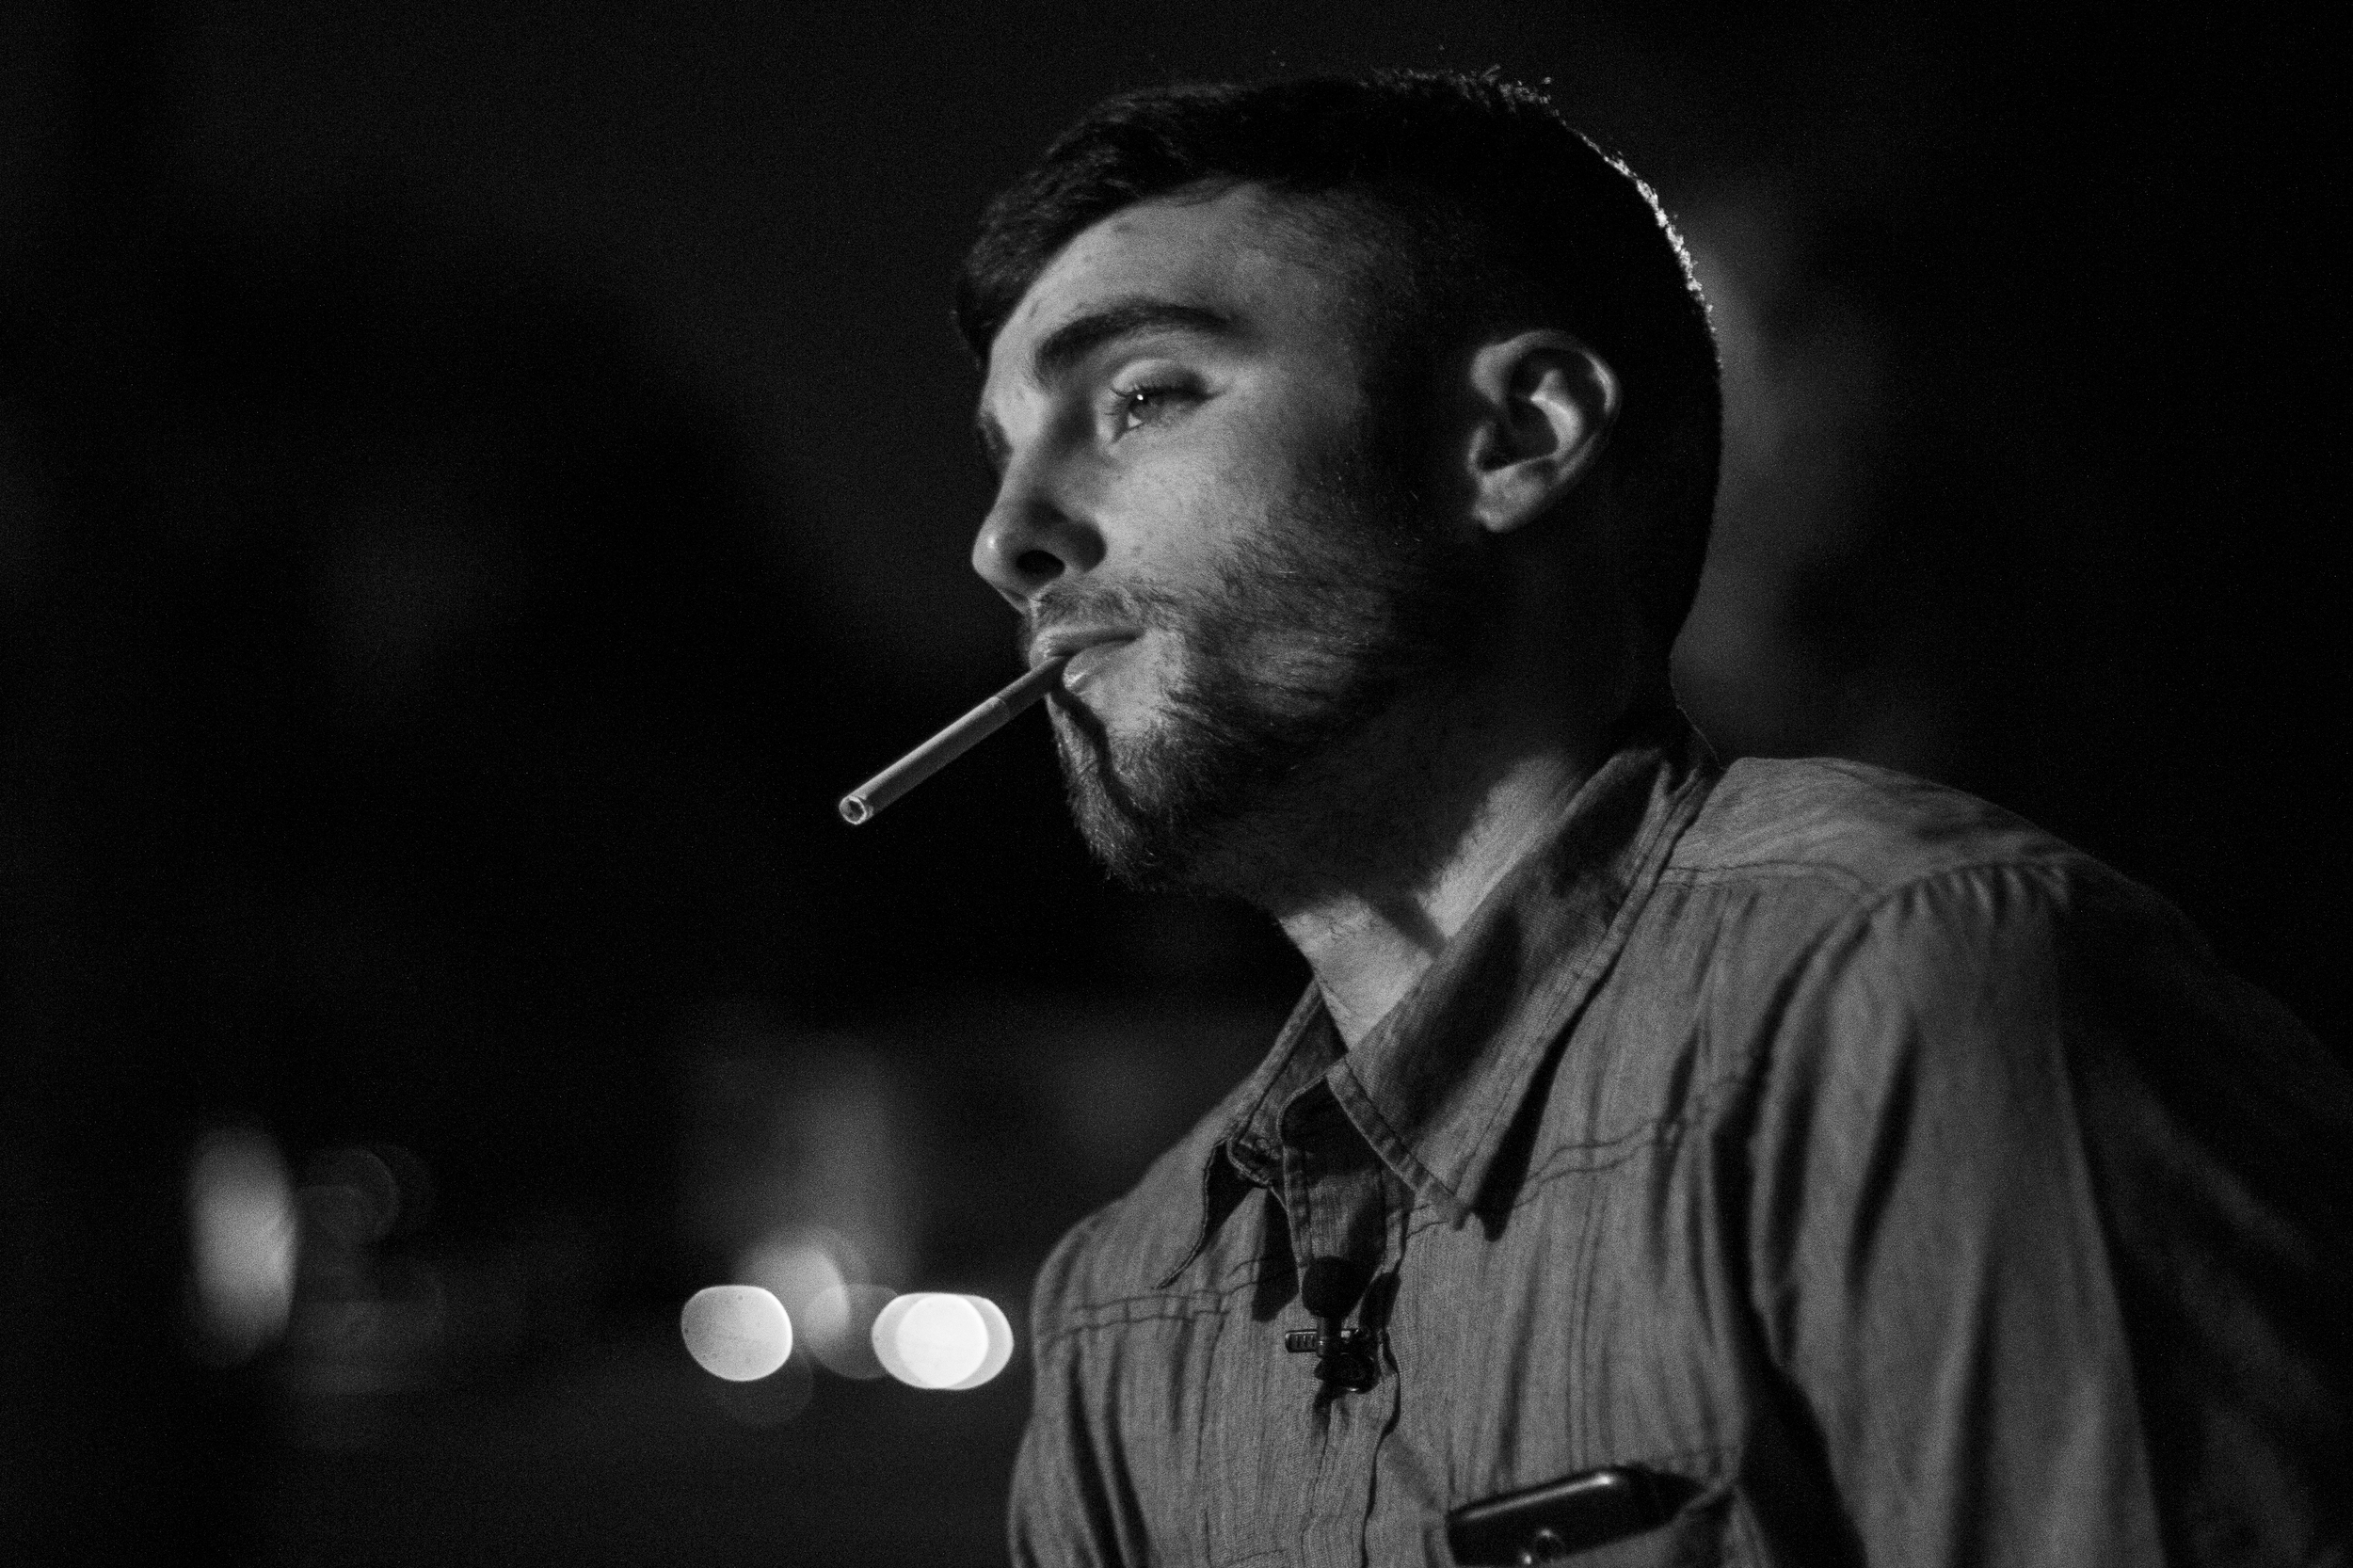 """Paul smokes a cigarette outside Devin's house. """"I wanna be the type of friend that my friends deserve; I wanna be the son that my mom deserves; I wanna be the boyfriend that my girlfriend deserves,"""" he said.  """"If there's no action behind my words, I'm not gonna change."""""""